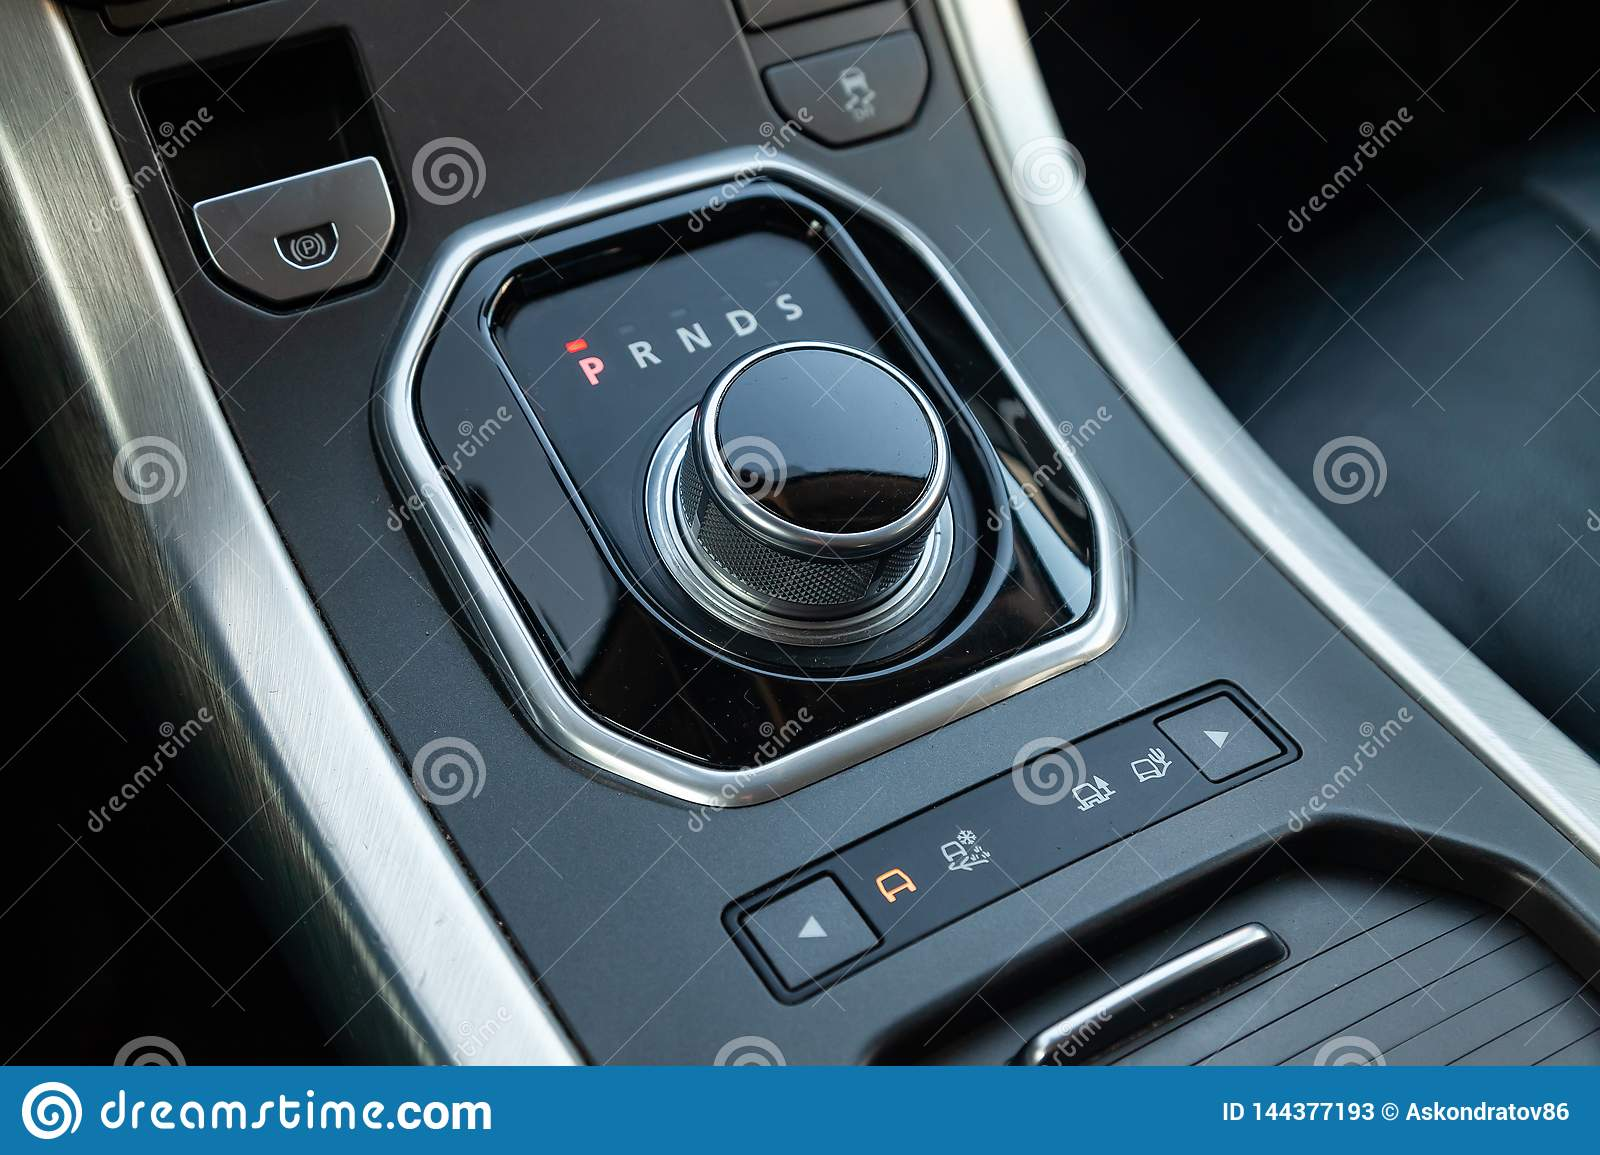 Gearbox gearbox selector in the form of a retractable washer in the center console